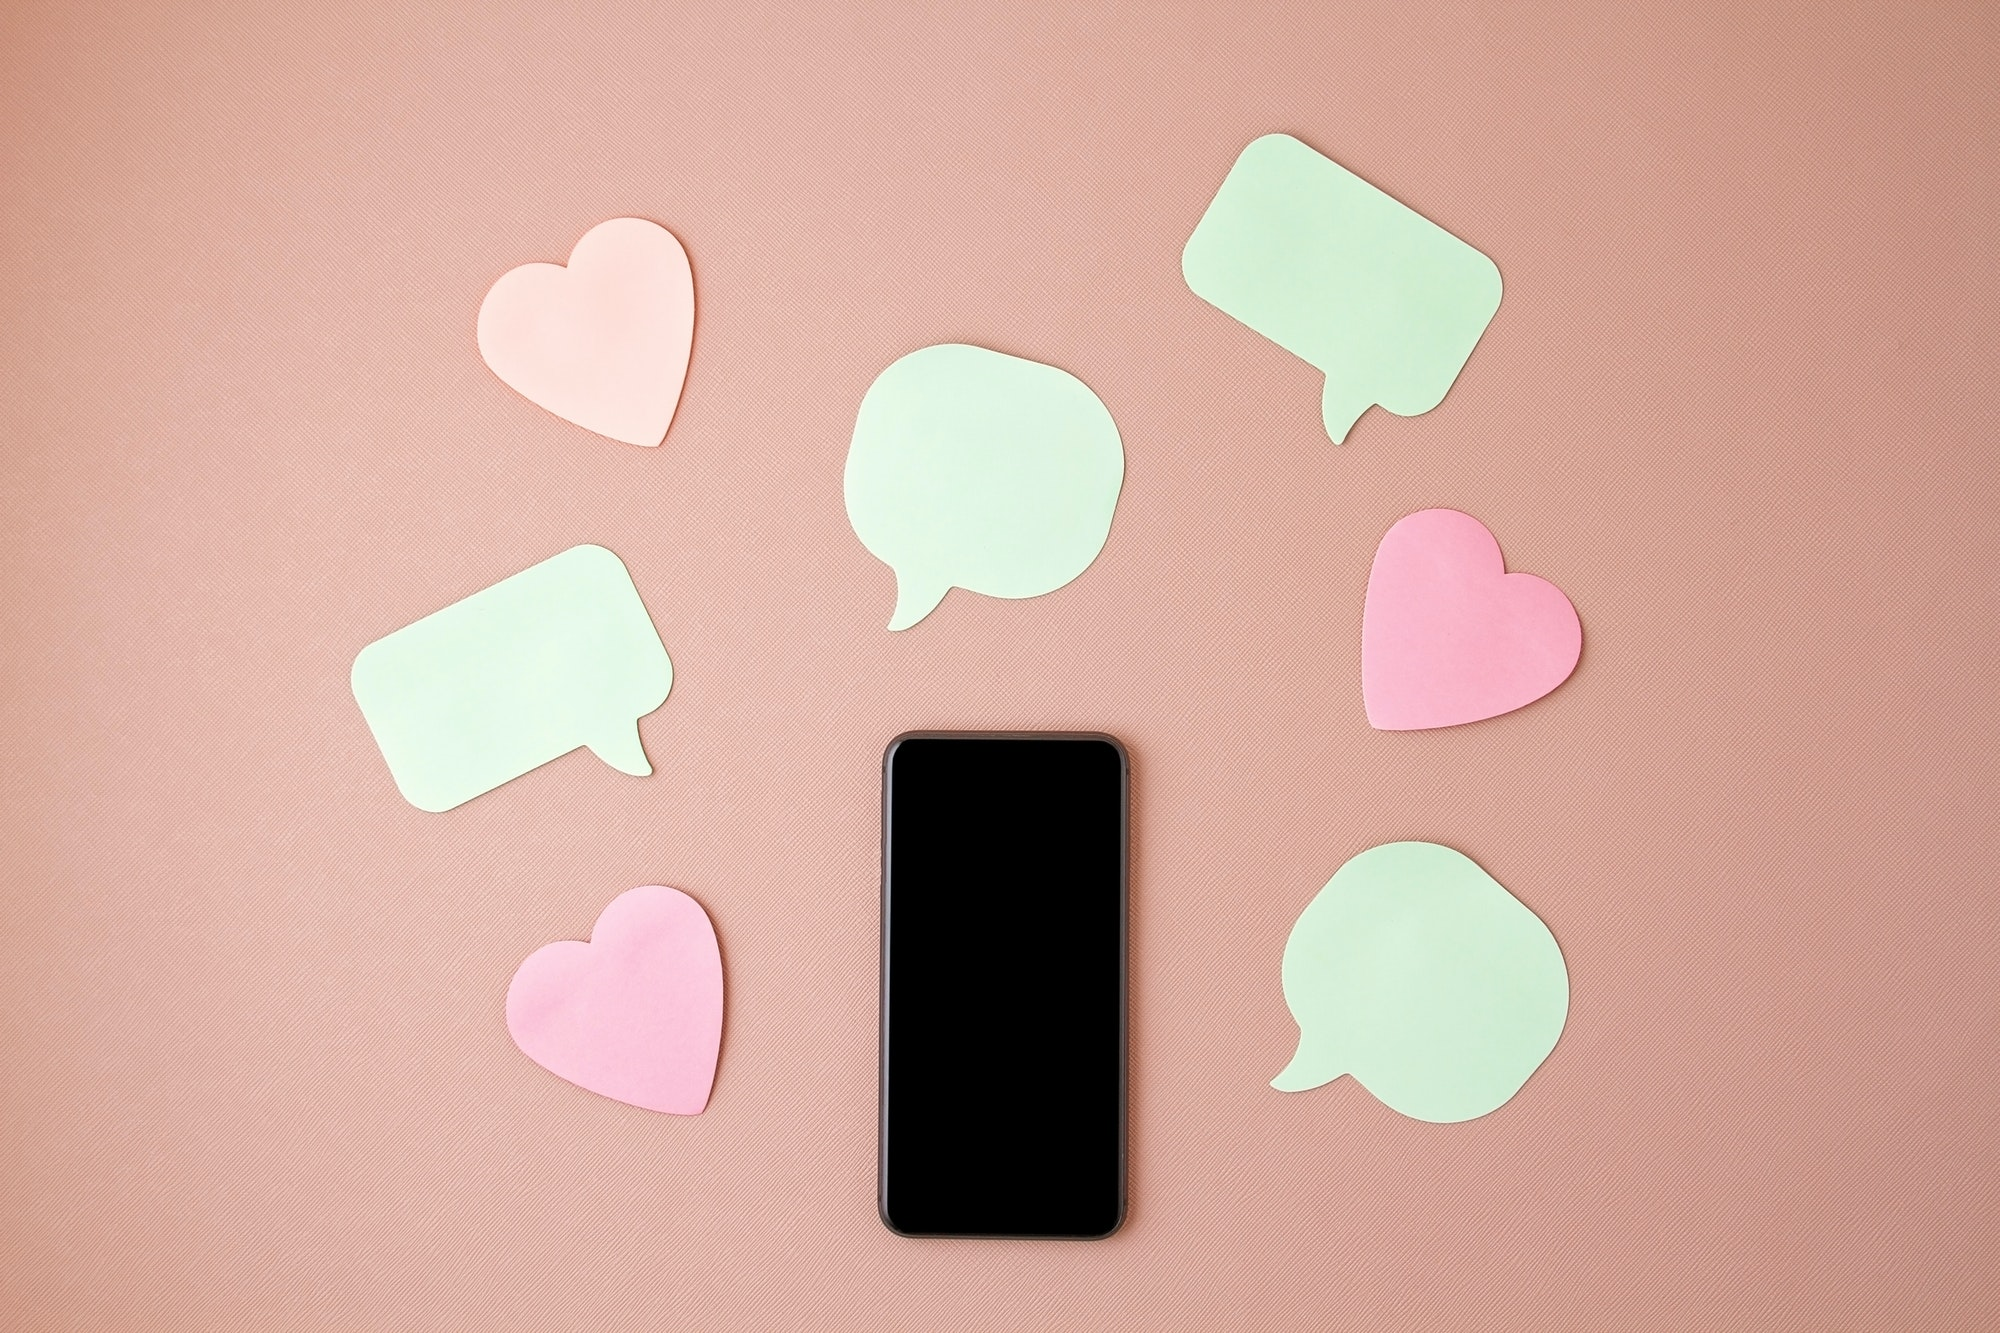 Mockup flat lay with smartphone and hearts and speach bubbles